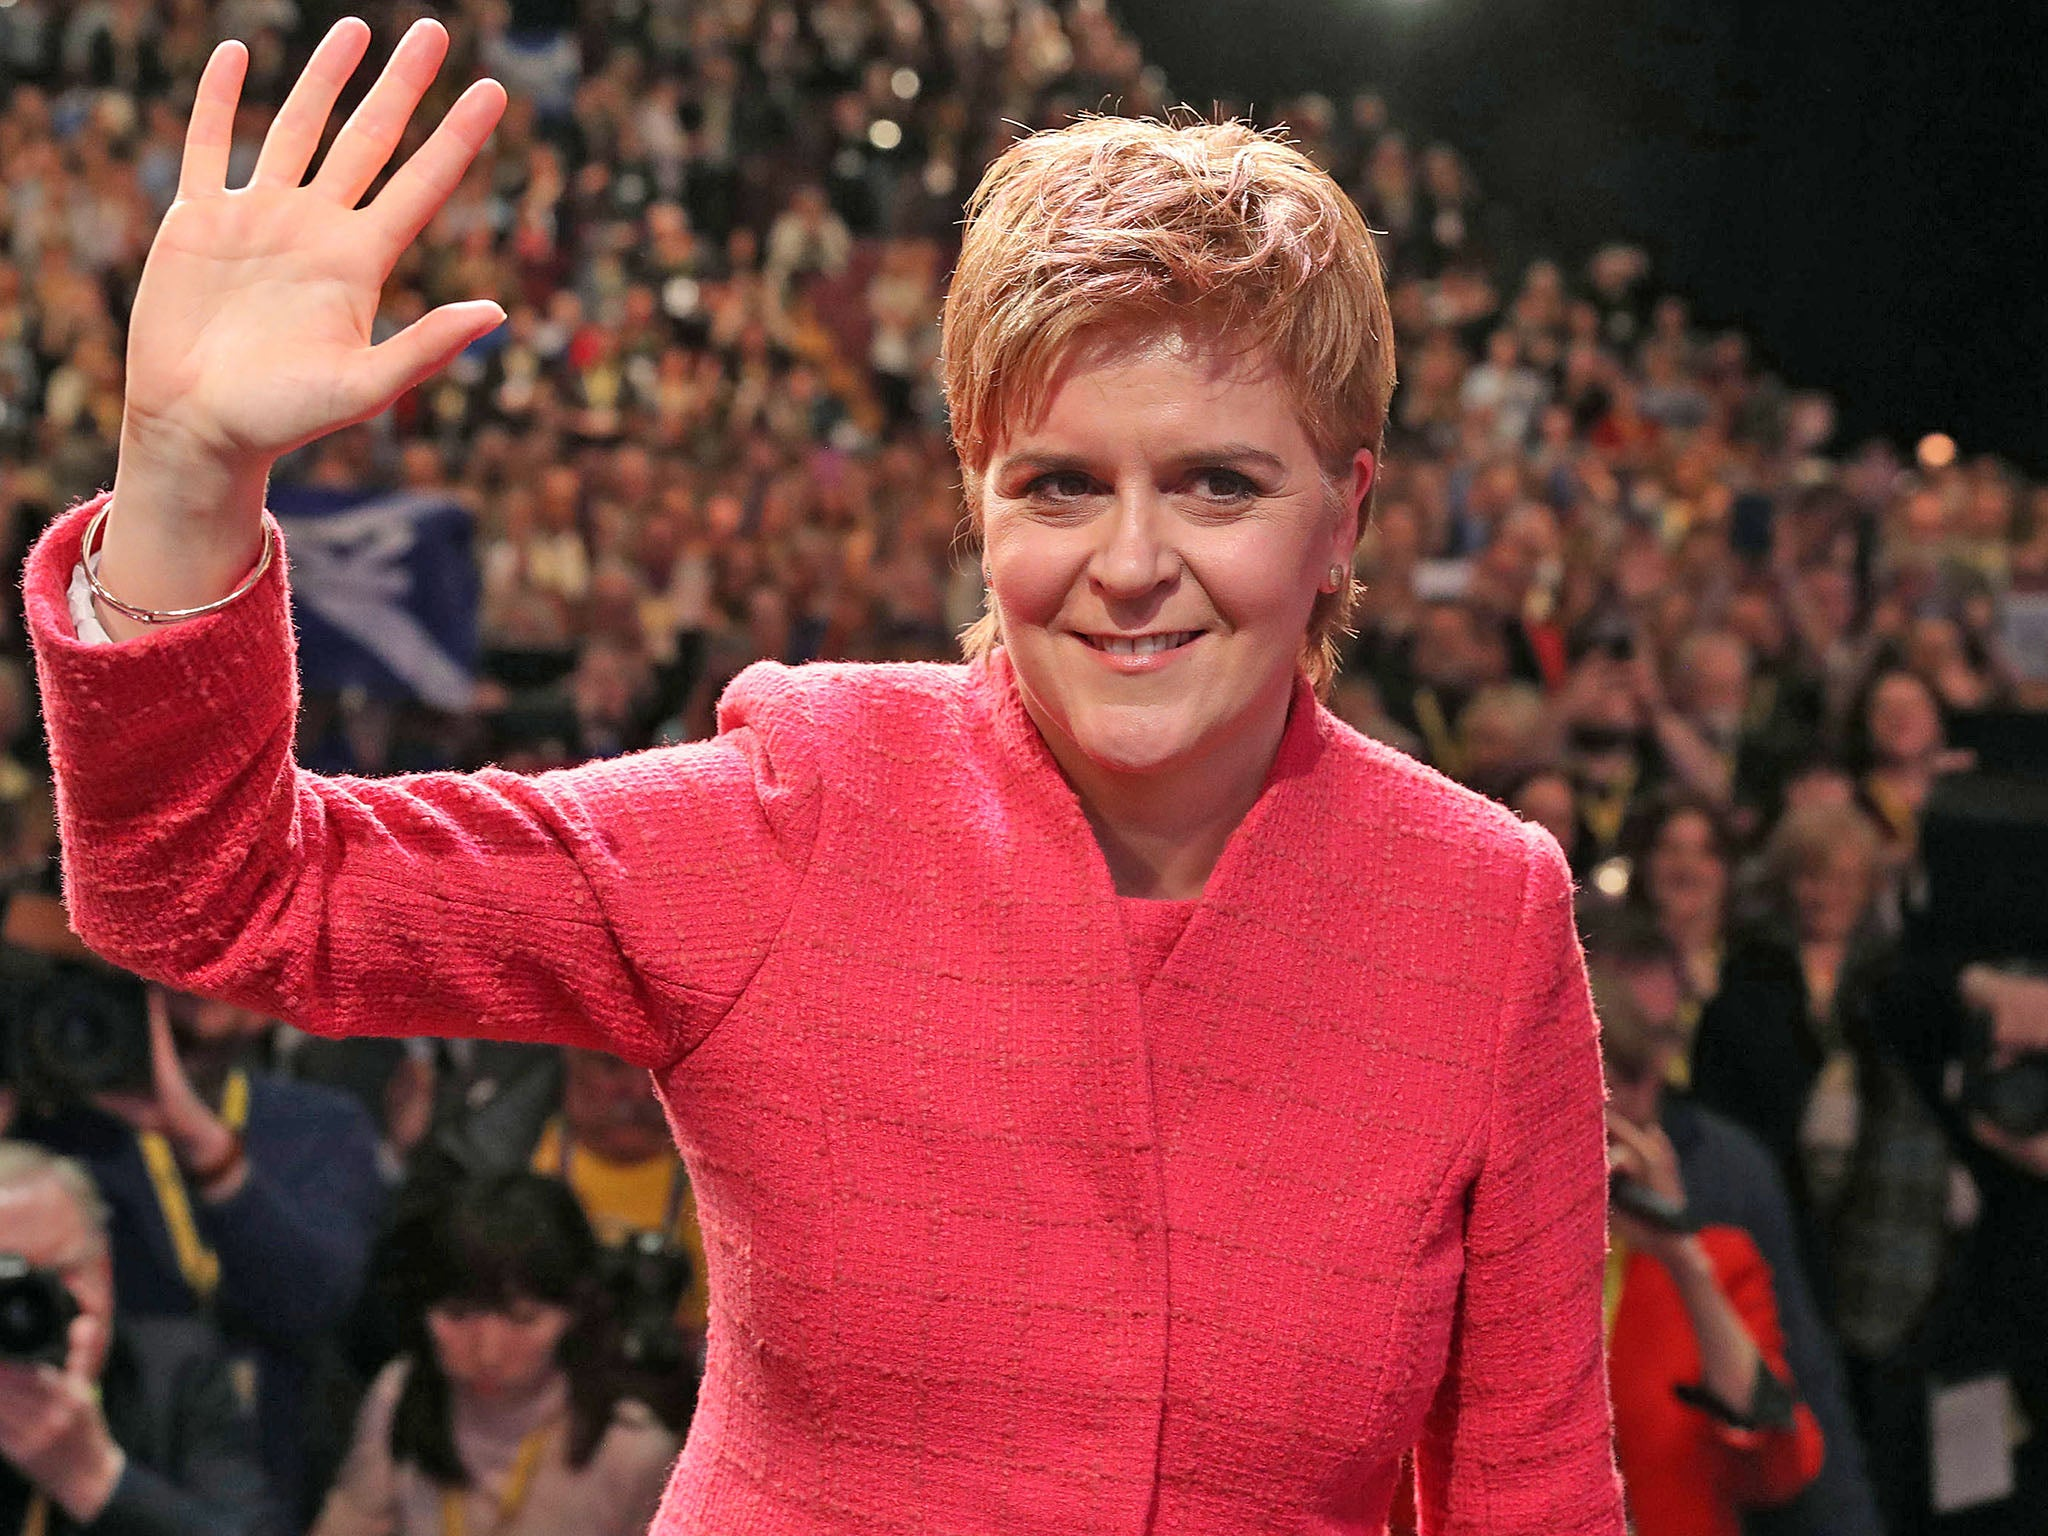 Scottish parliament votes 69 to 59 in favour of holding second independence referendum